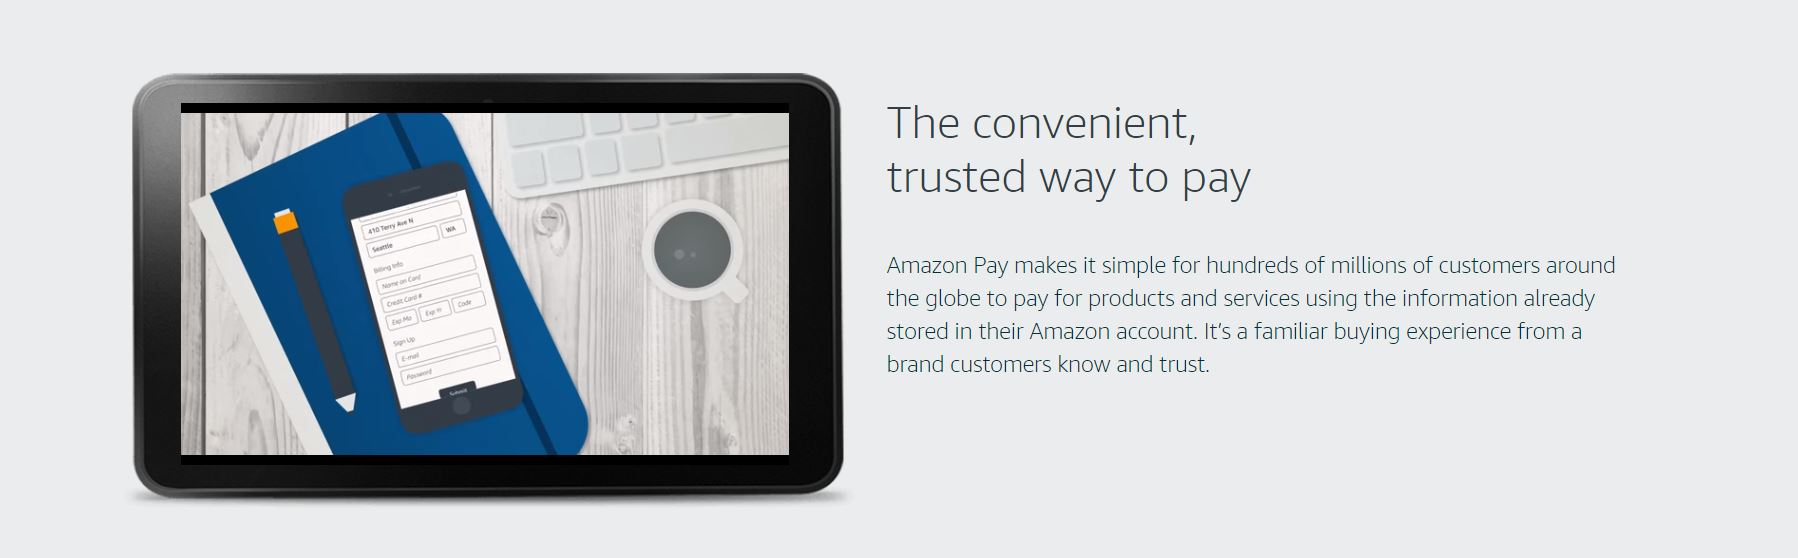 Screenshot of Amazon Pay website